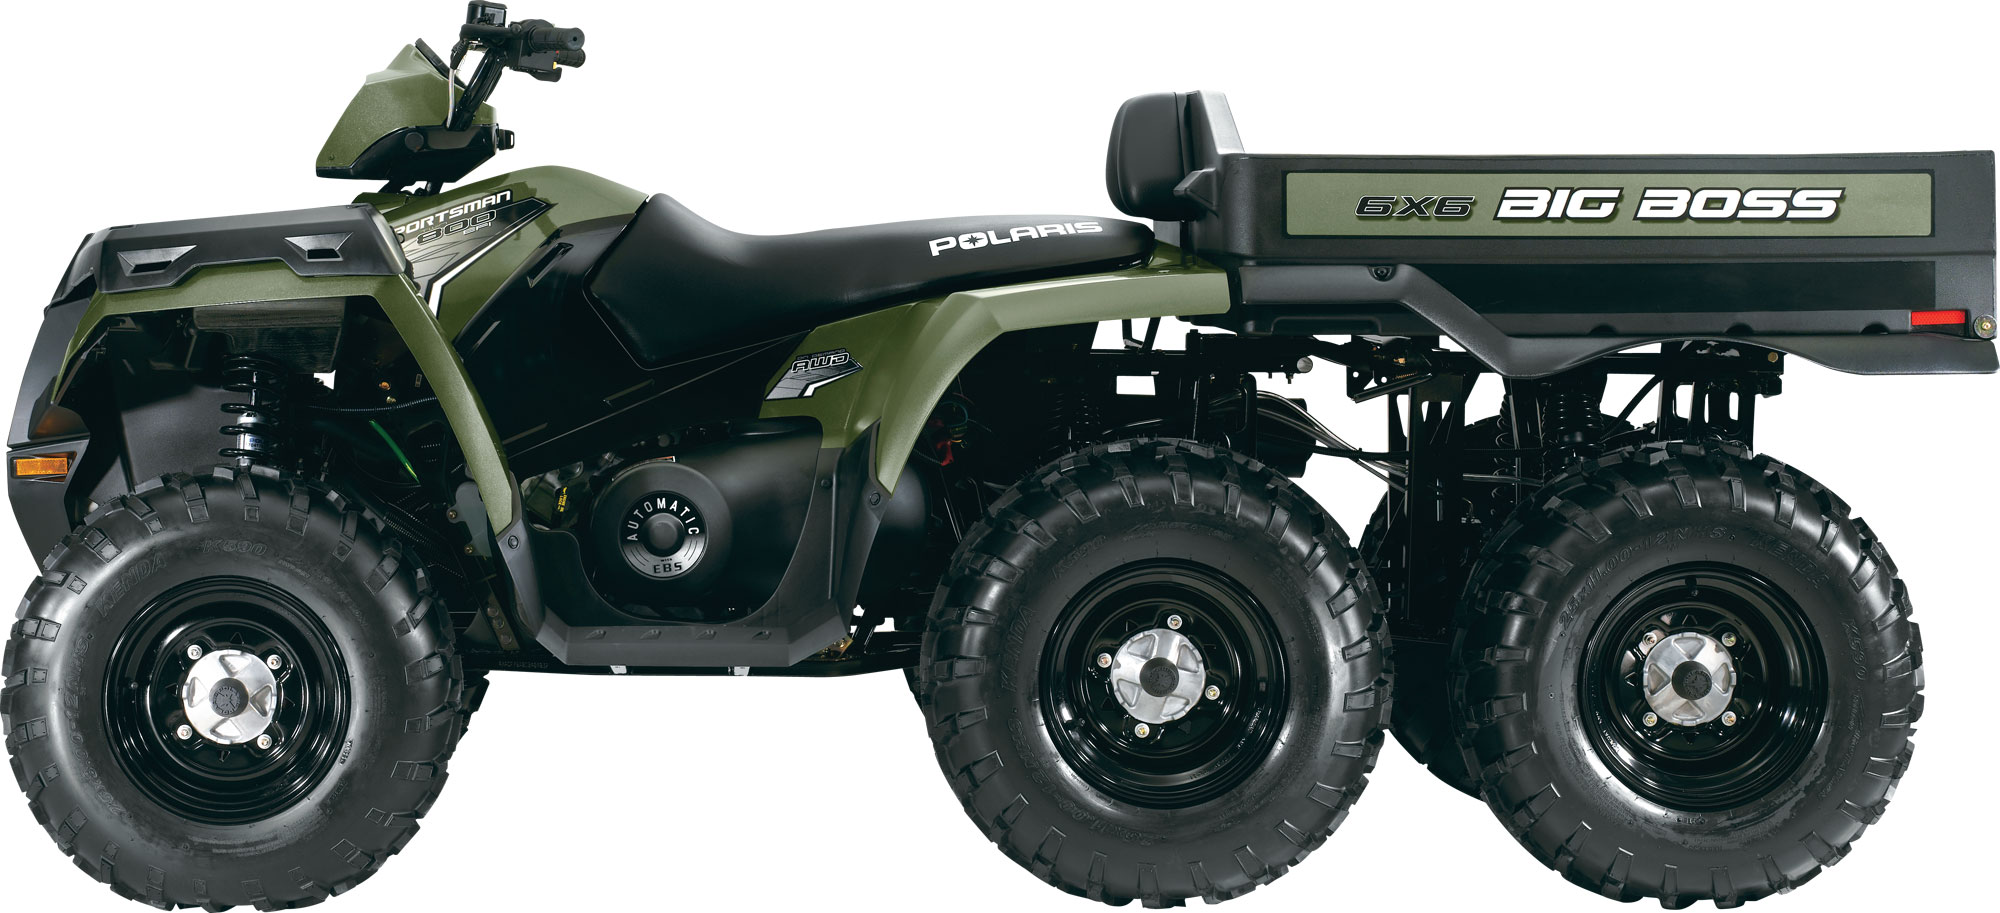 2012 polaris sportsman big boss 6x6 800 efi review. Black Bedroom Furniture Sets. Home Design Ideas